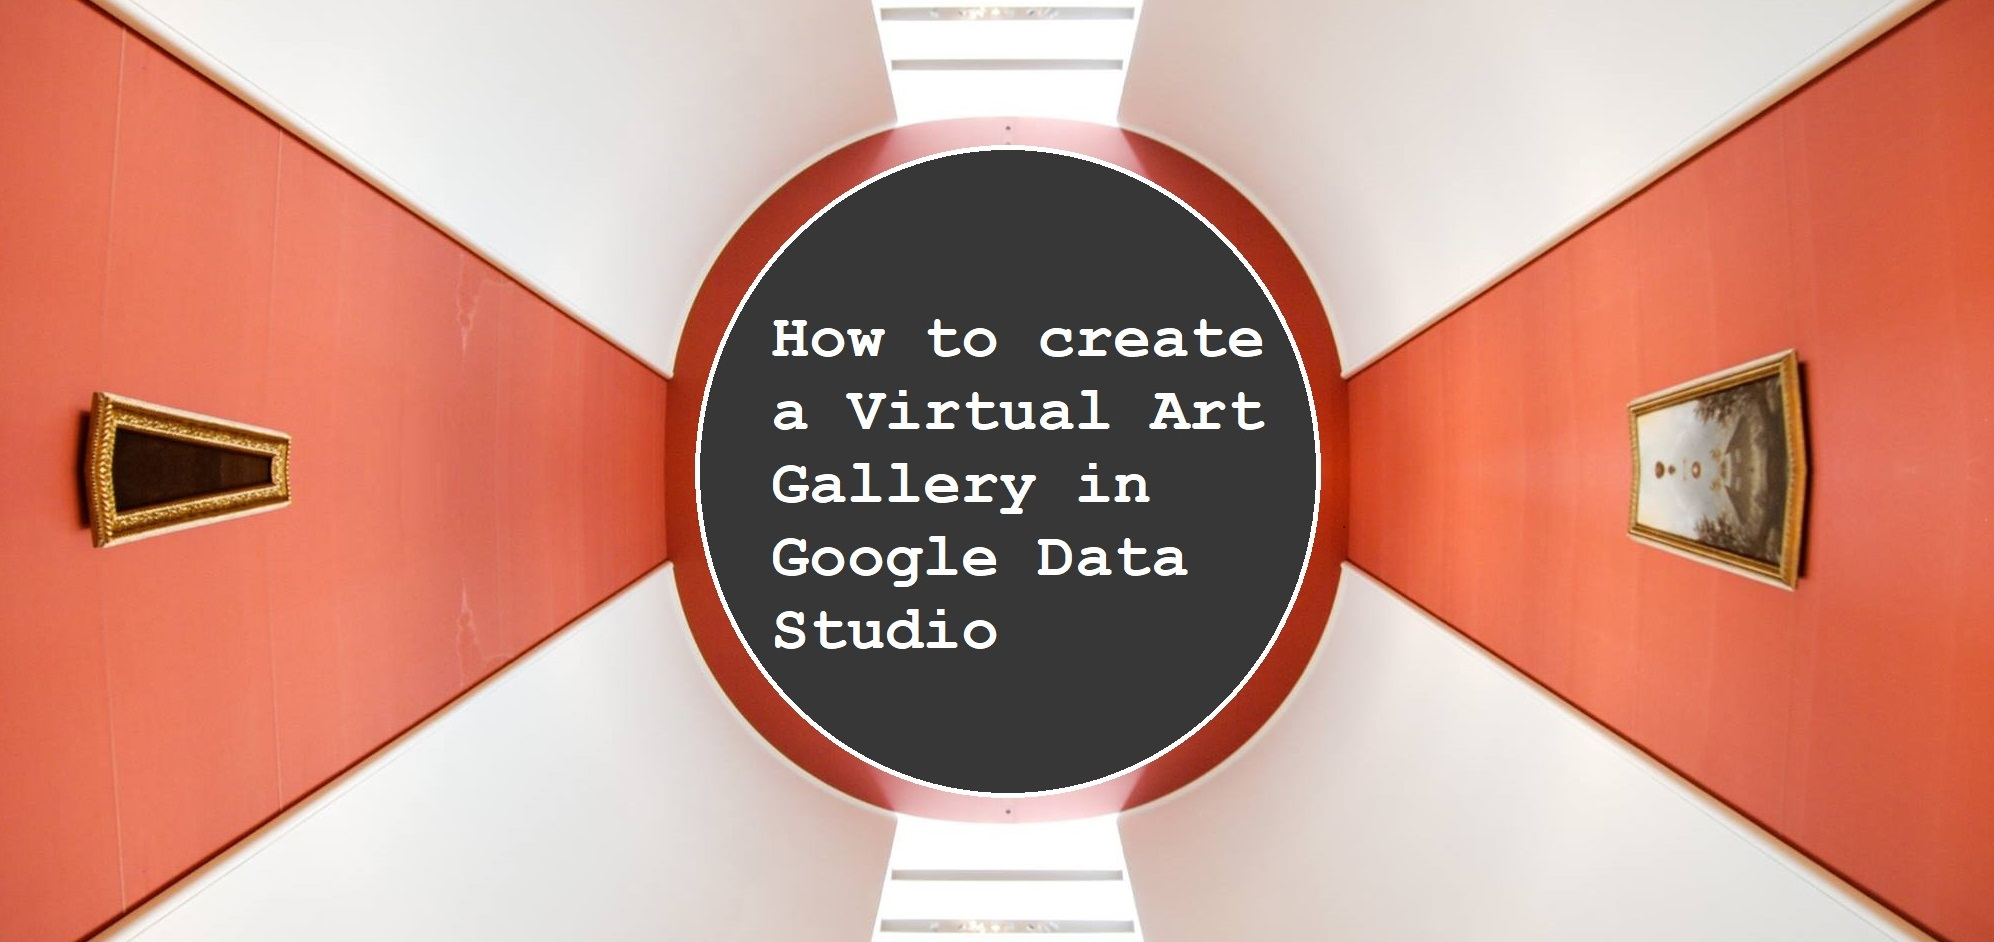 How to create a Virtual Art Gallery in Google Data Studio